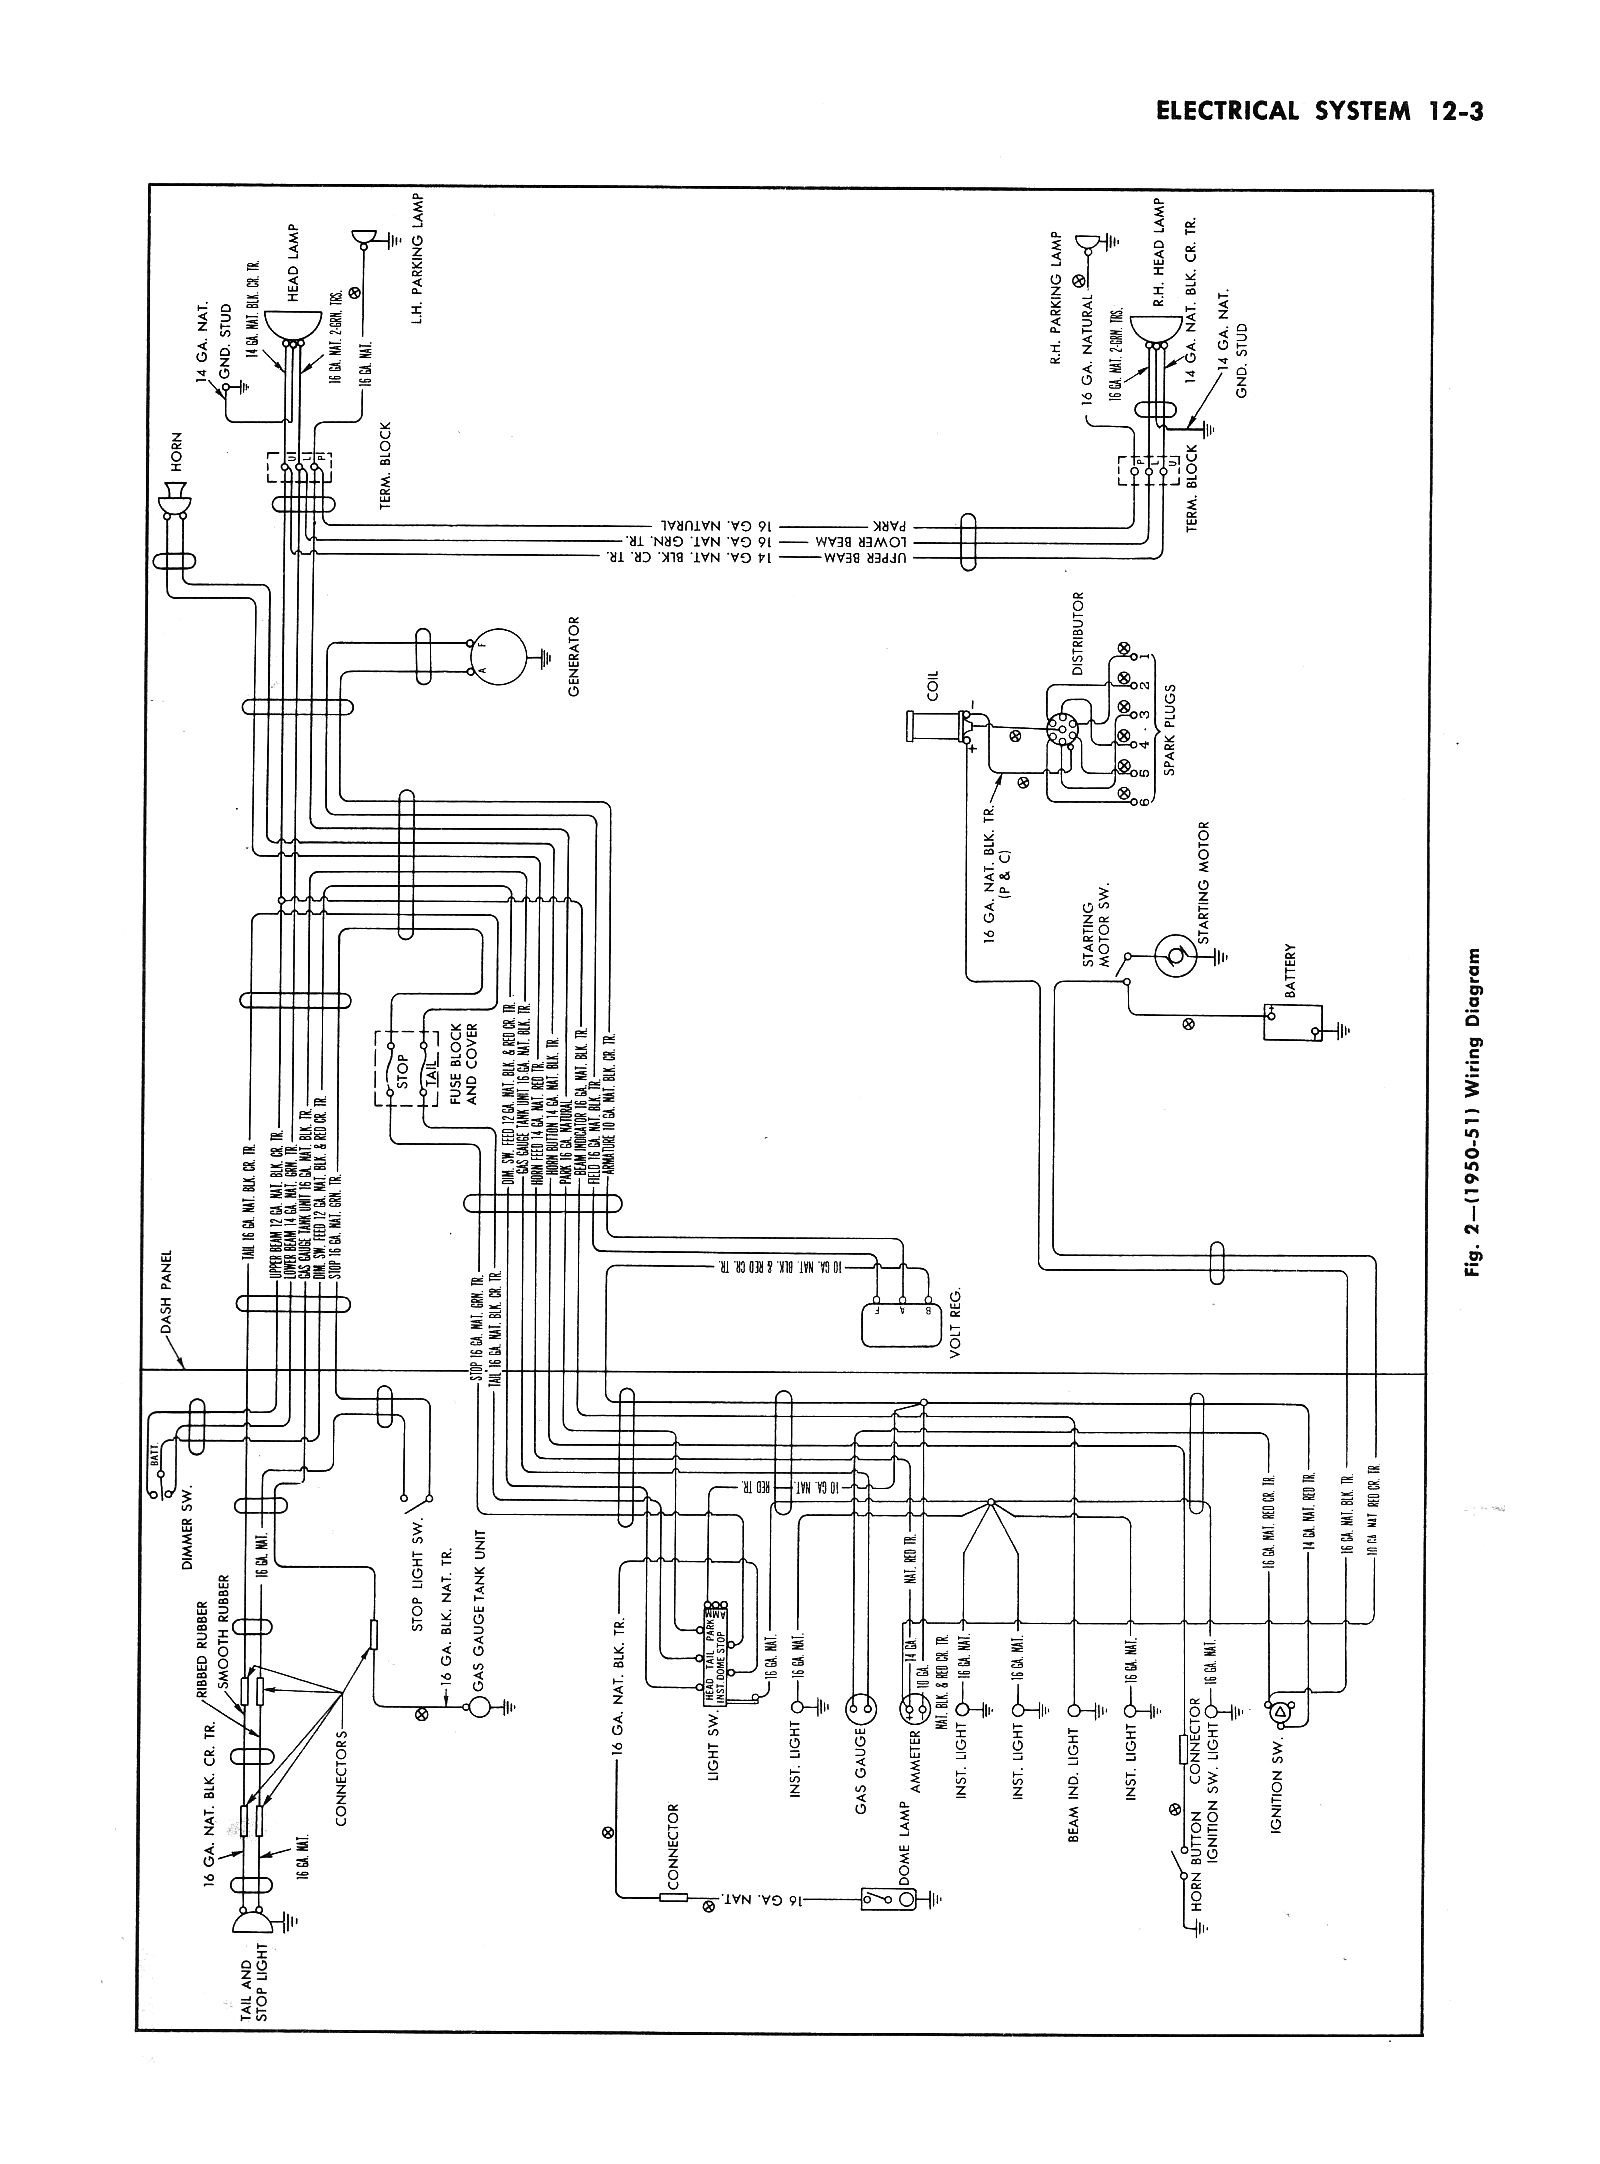 further 1978 ford wiring diagram on 1950 ford gauges wiring diagram rh jadecloud co 1940 ford wiring harness 1940 ford wiring harness